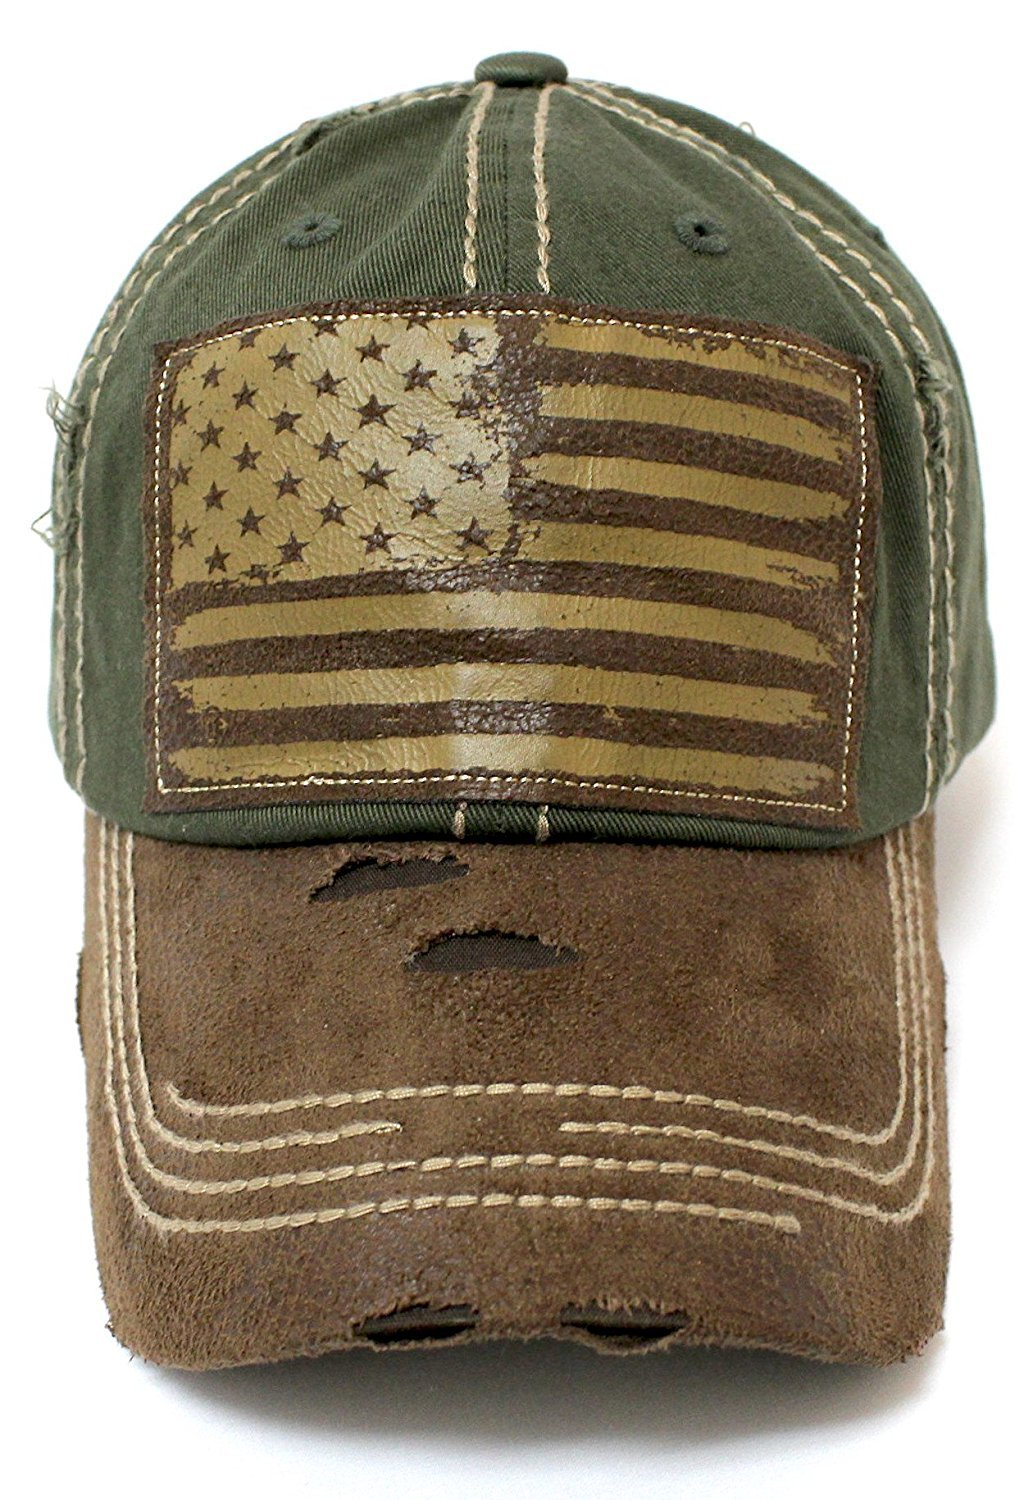 New!! Army Green/Tan Suede Bill American Flag Vintage Baseball Hat - Caps 'N Vintage